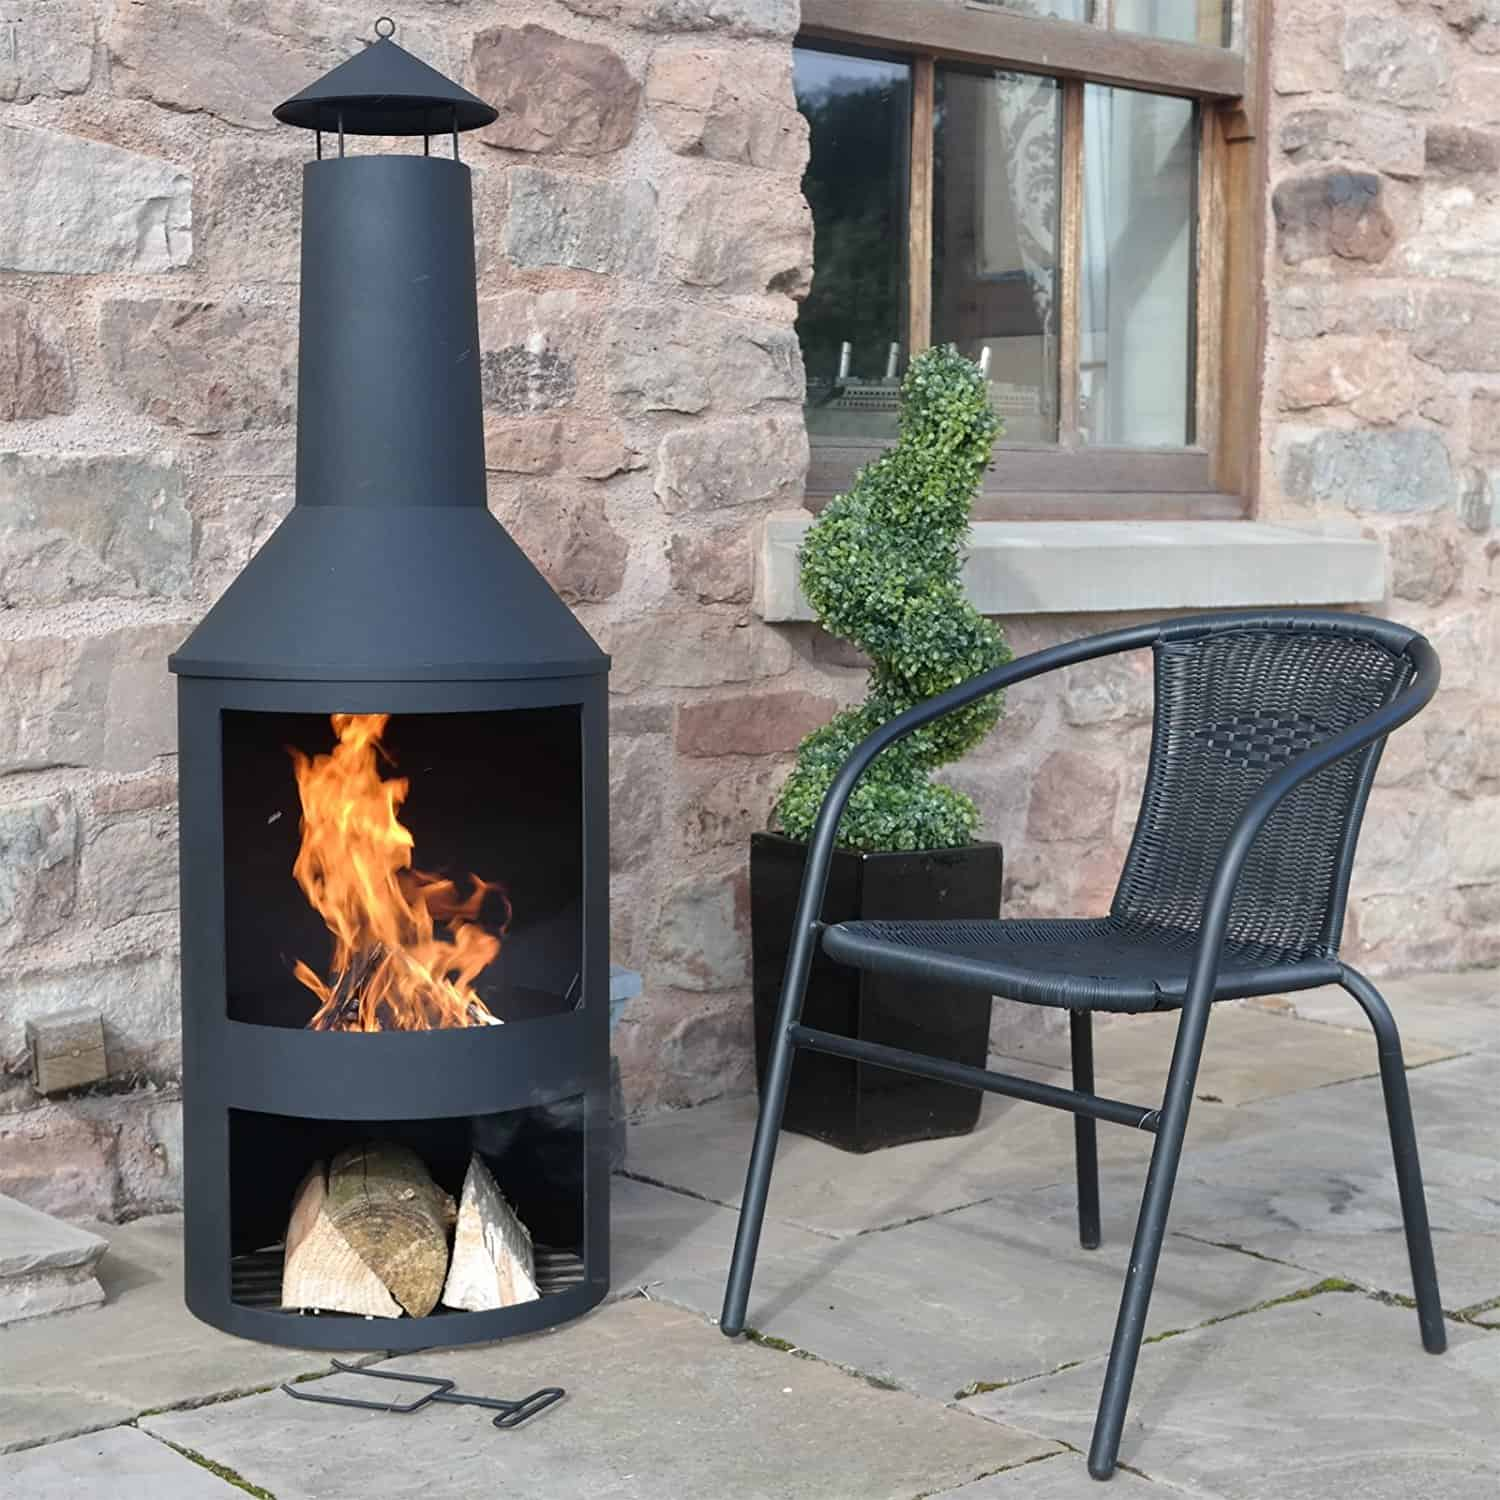 Marko Outdoor Extra Large Chimenea